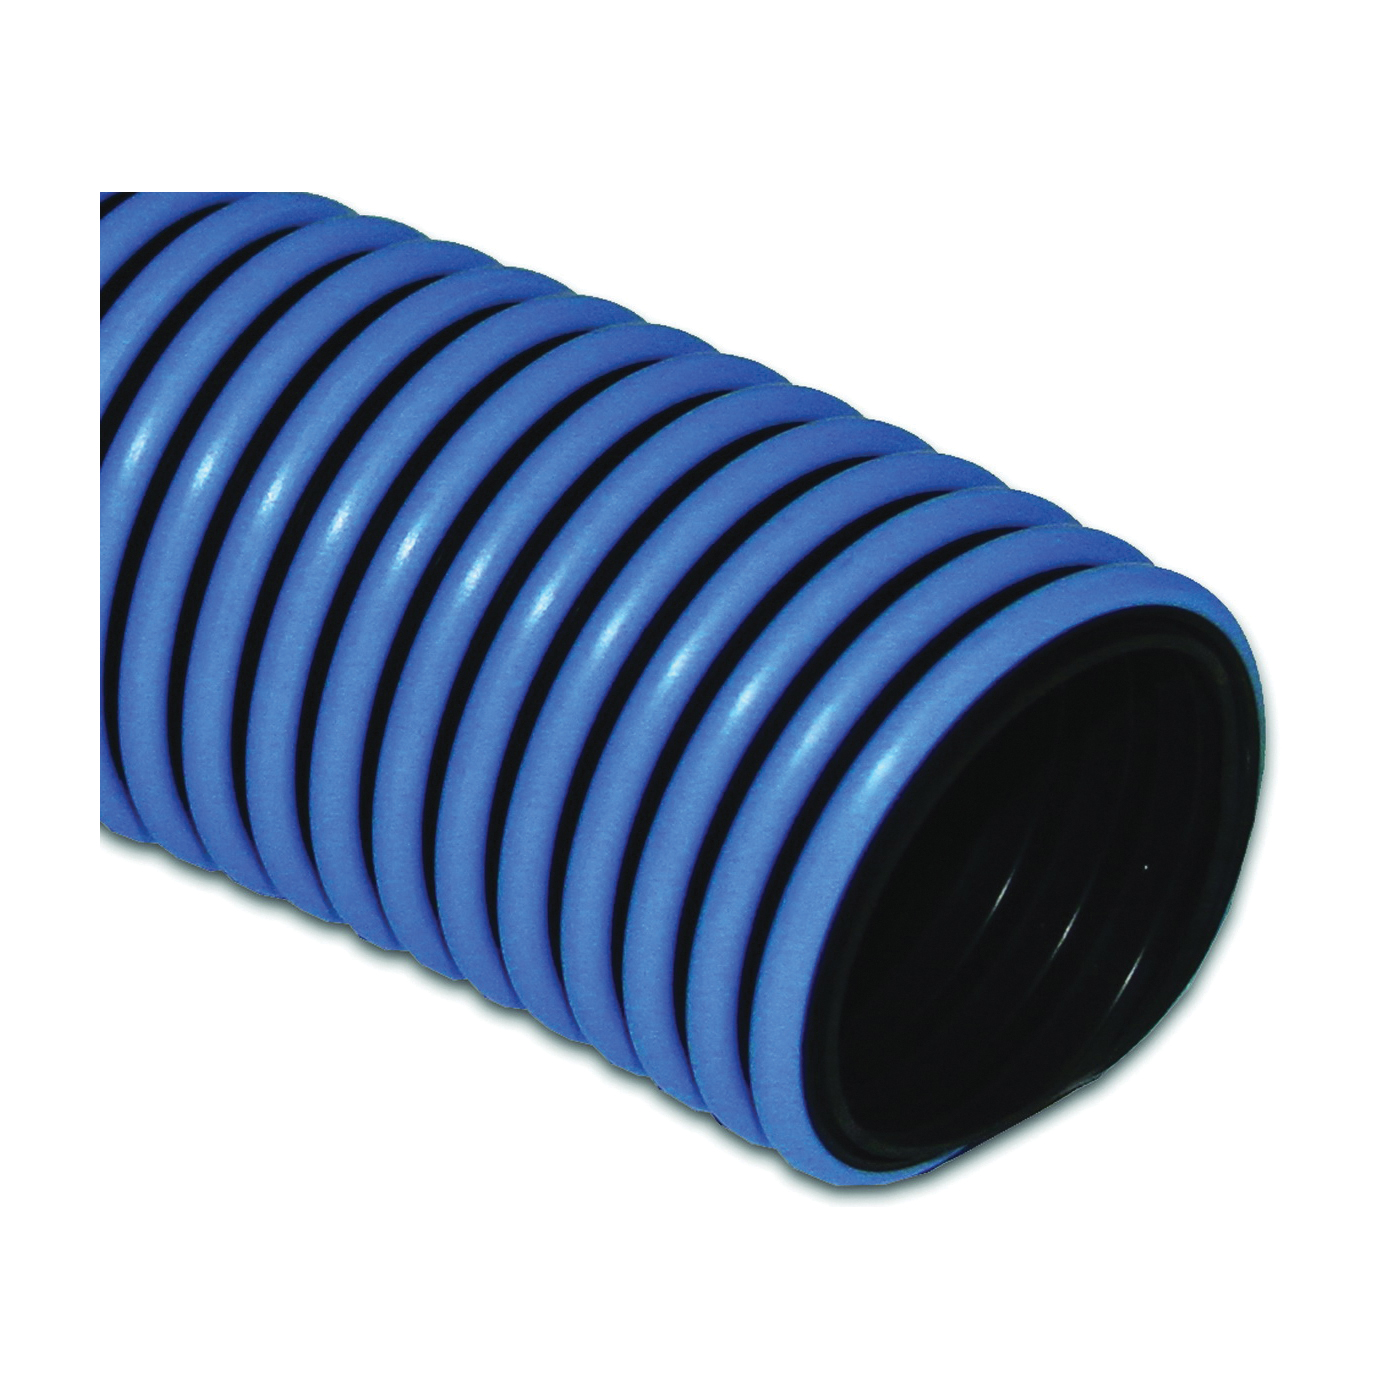 Picture of UDP T32005002/RPSR Pool Vacuum Hose, 1-1/2 in ID, 50 ft L, Polyethylene, Black/Blue